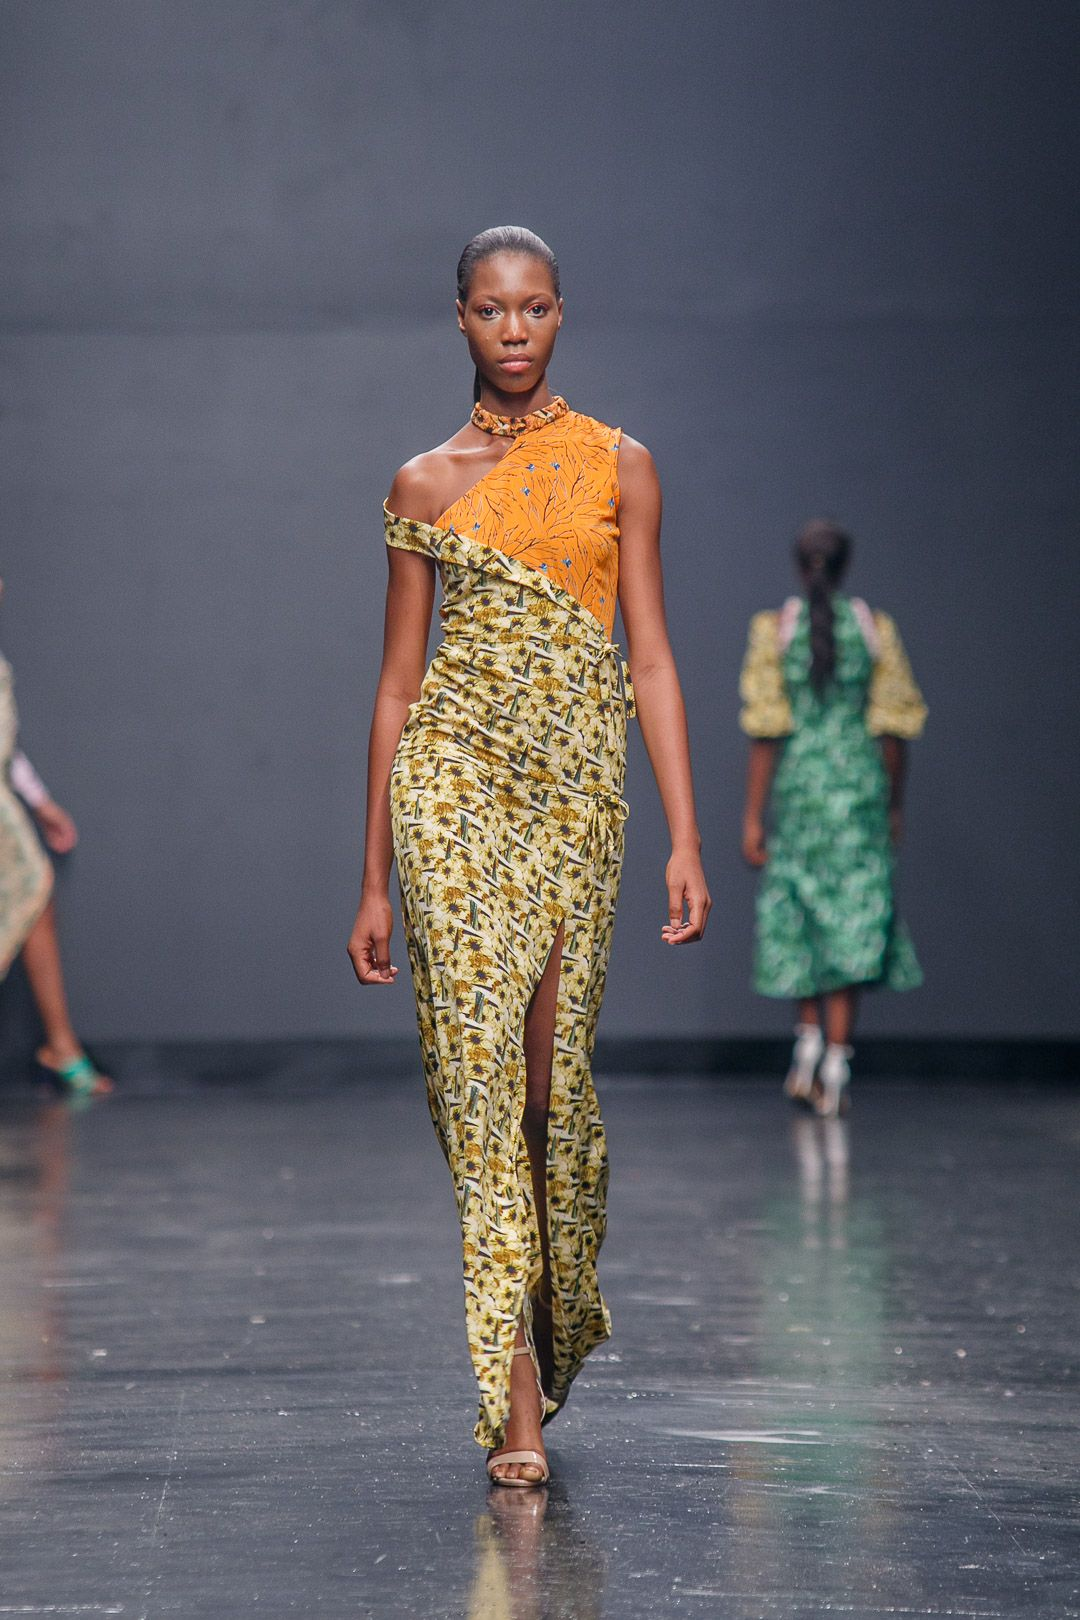 Lagos Fashion Week 2018 Lisa Folawiyo Bn Style In 2020 Fashion African Fashion Week Fashion Week